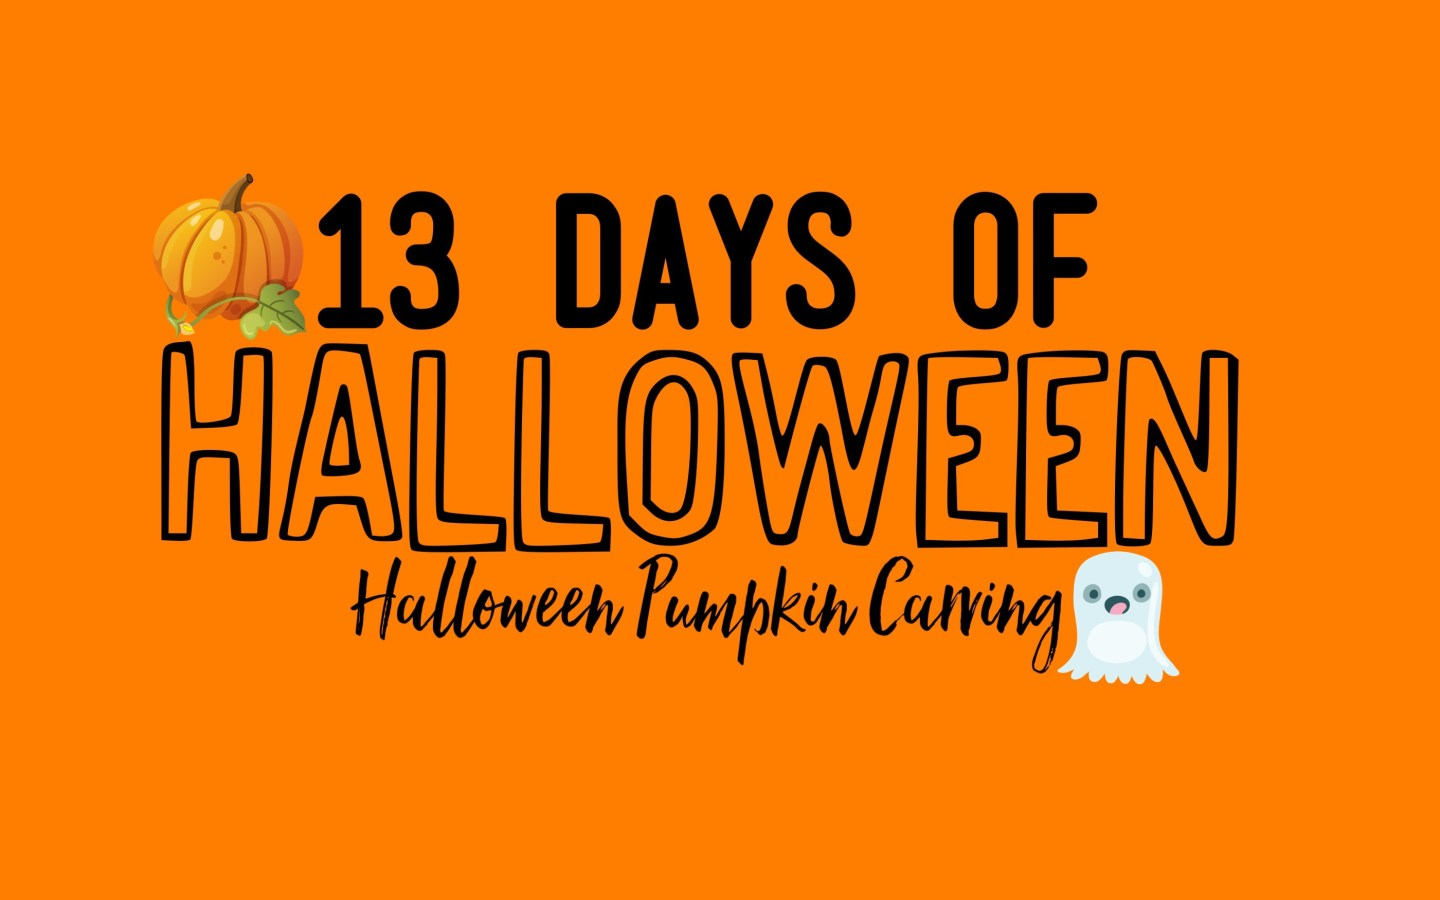 13 Days Of Halloween, Pumpkin Carving!